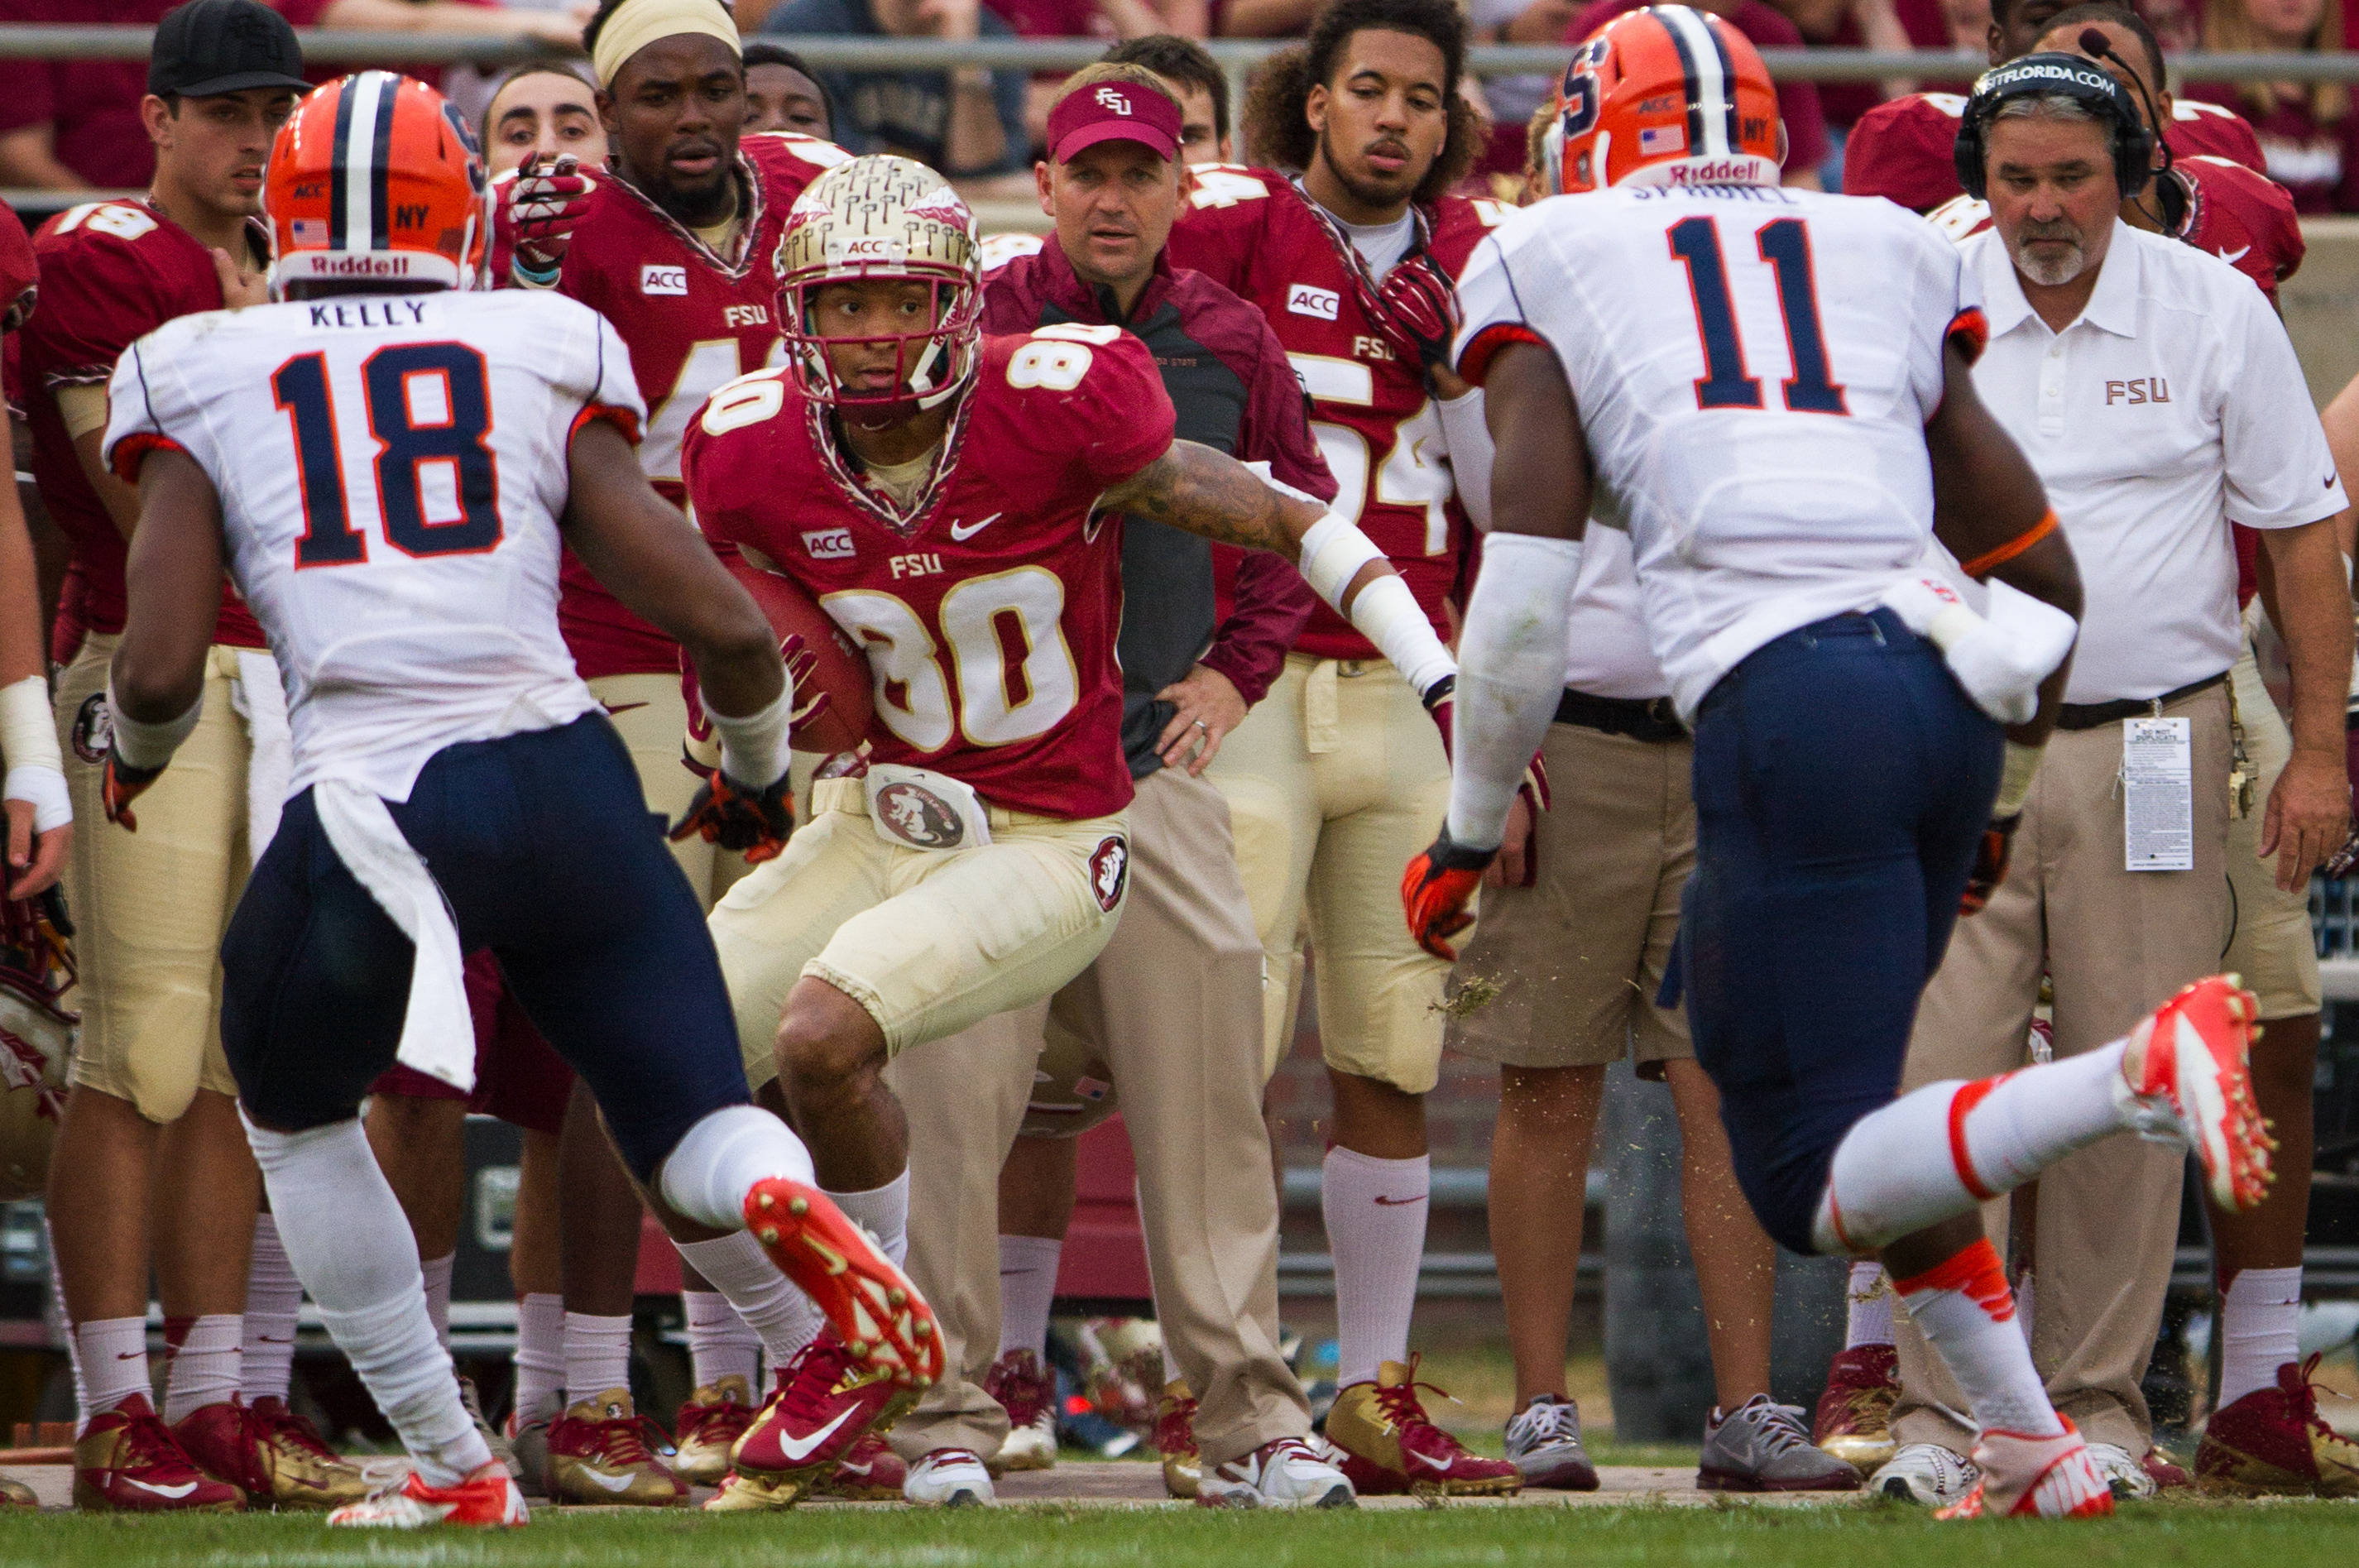 Rashad Greene (80) runs the ball during FSU Football's 59-3 win over Syracuse on Saturday, November 16, 2013 in Tallahassee, Fla. Photo by Mike Schwarz.